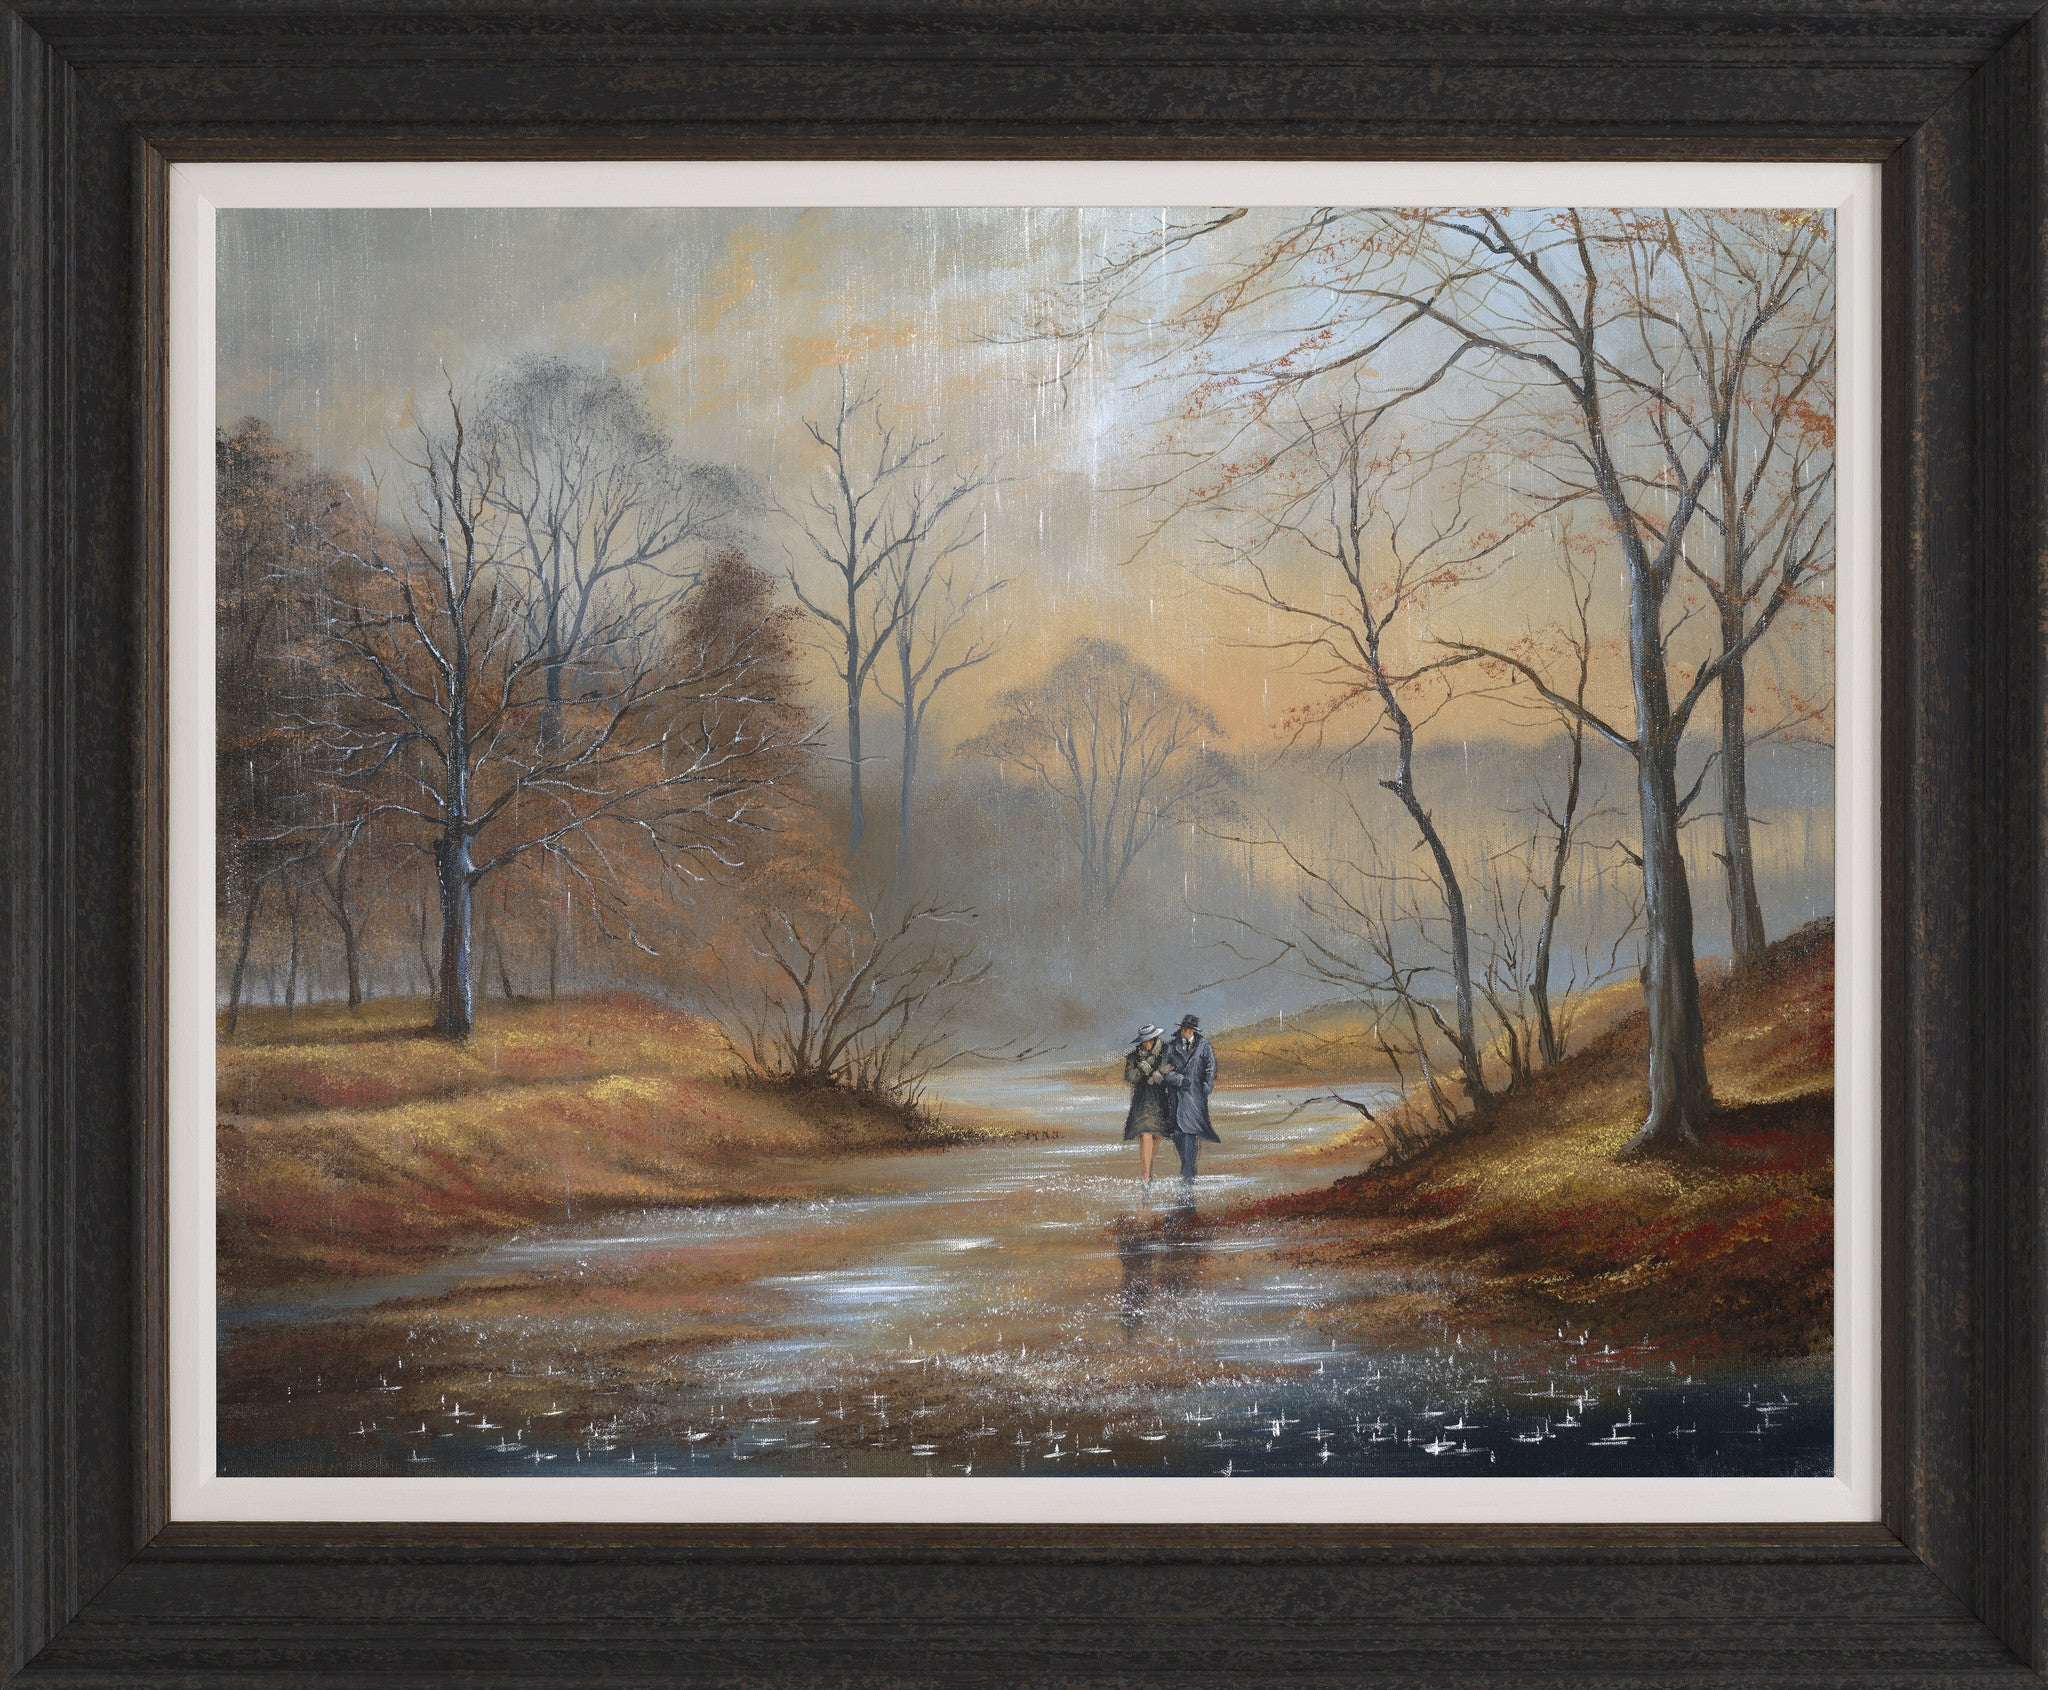 Warm and Glowing - 2014 - Jeff Rowland - Low Availability - Antidote Art